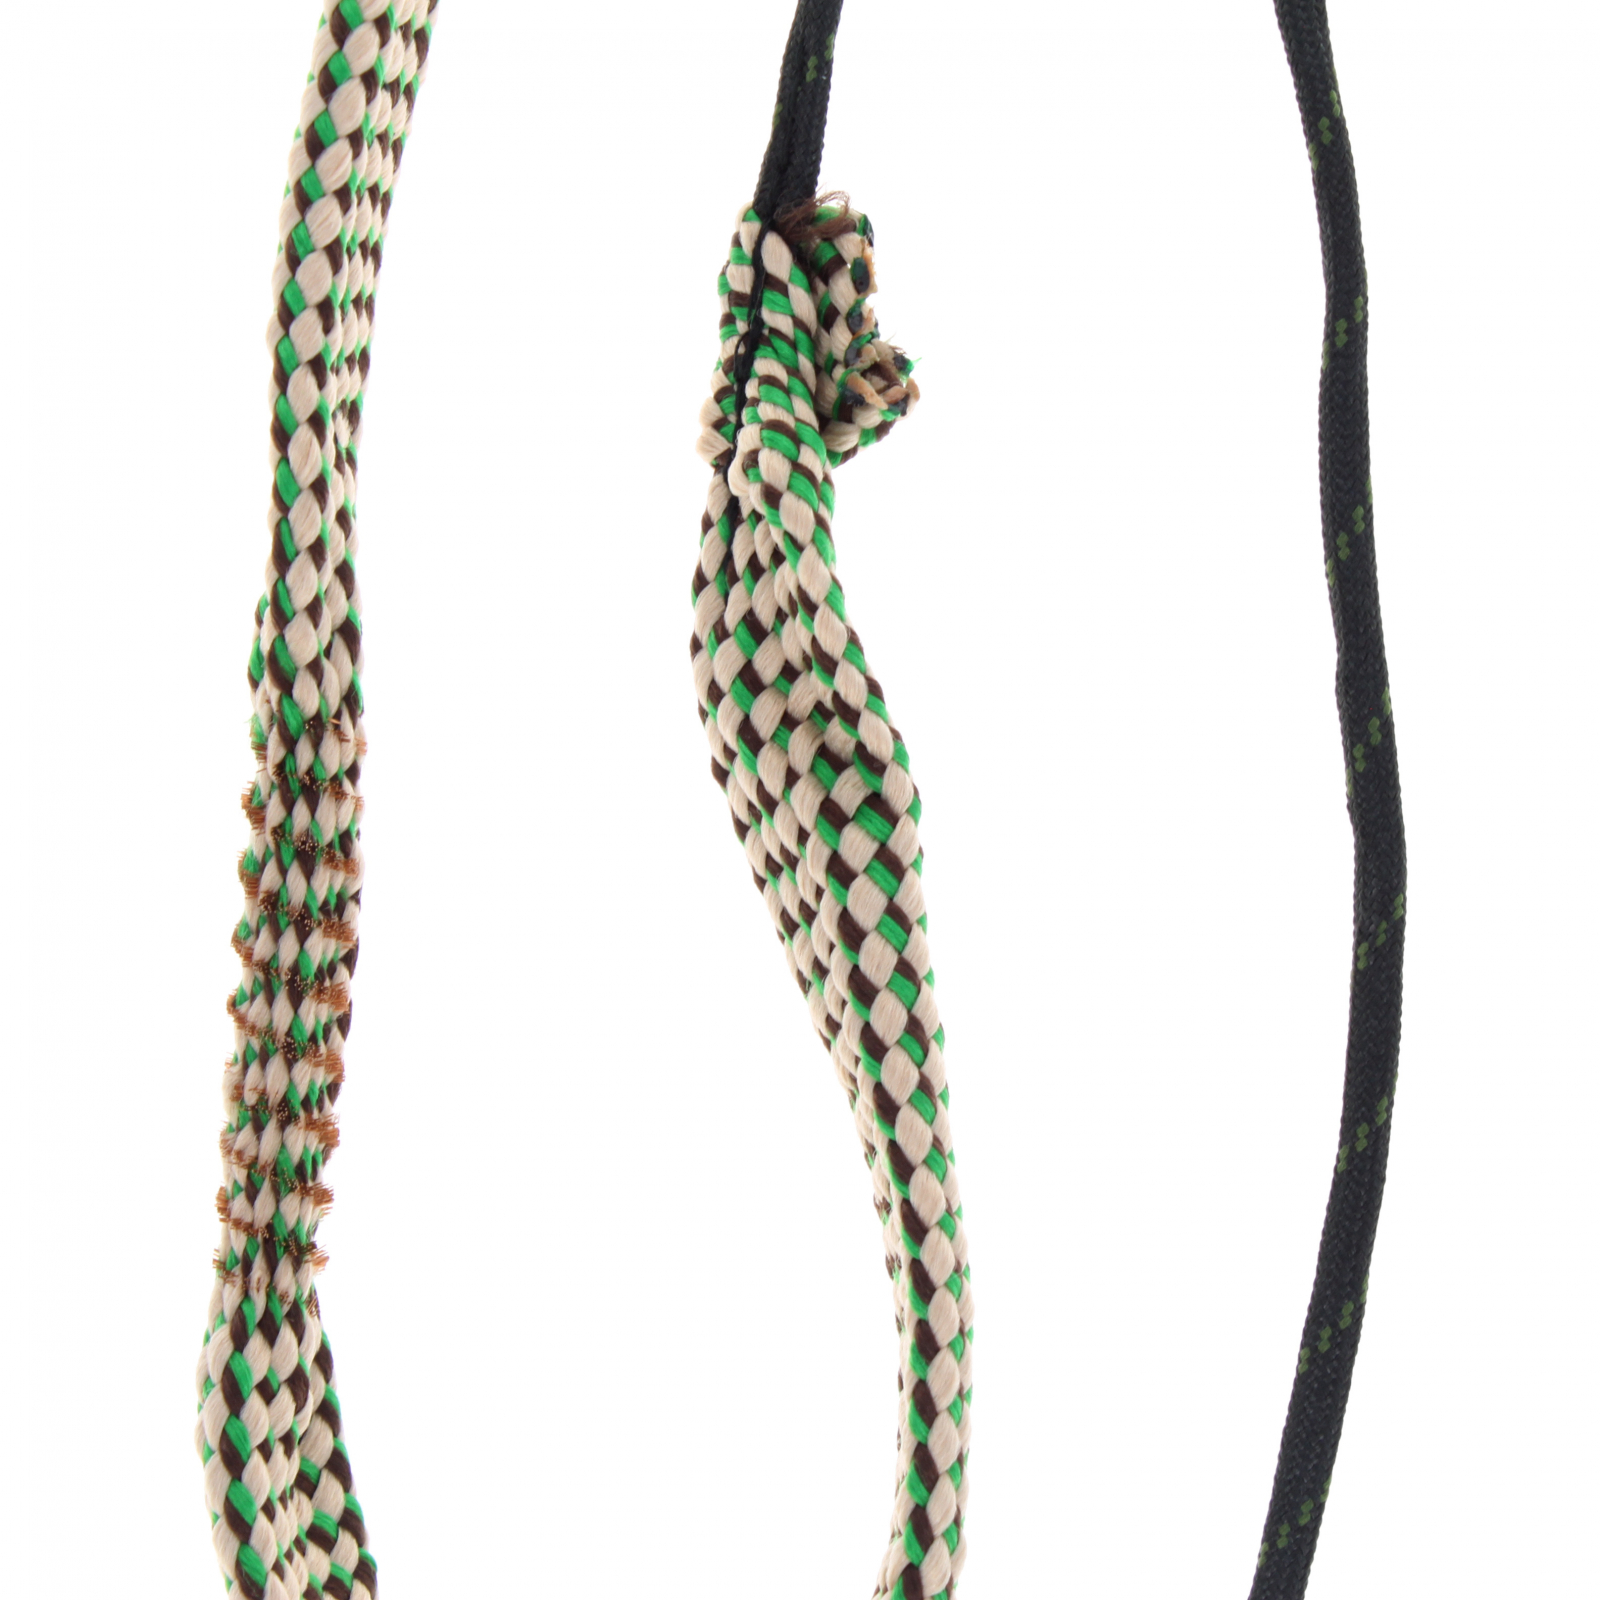 ASR Outdoor Bore Snake Rifle Gun Cleaning Rope .308